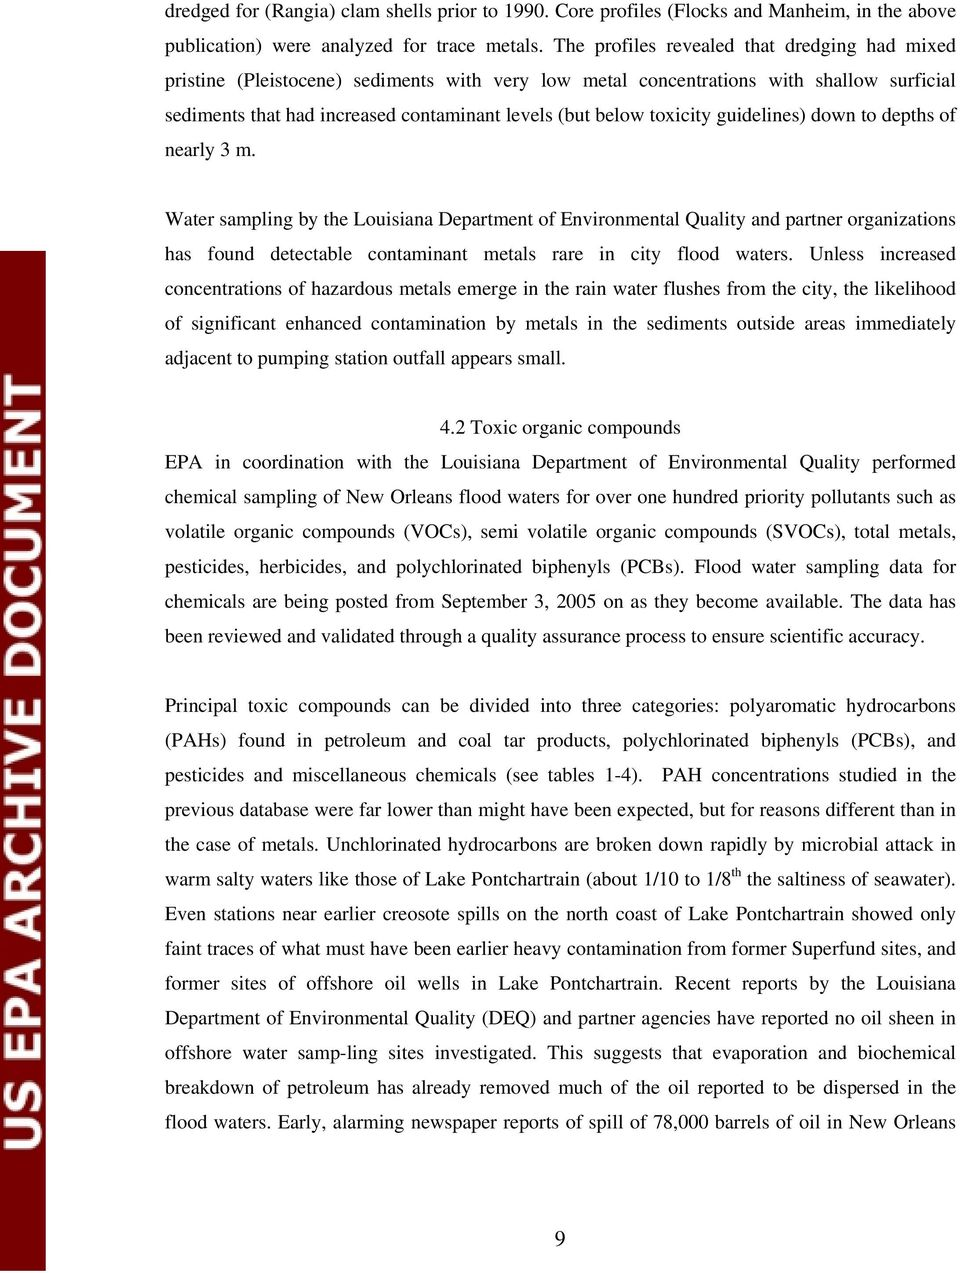 water quality assessment and monitoring in new orleans following hurricane katrina pdf